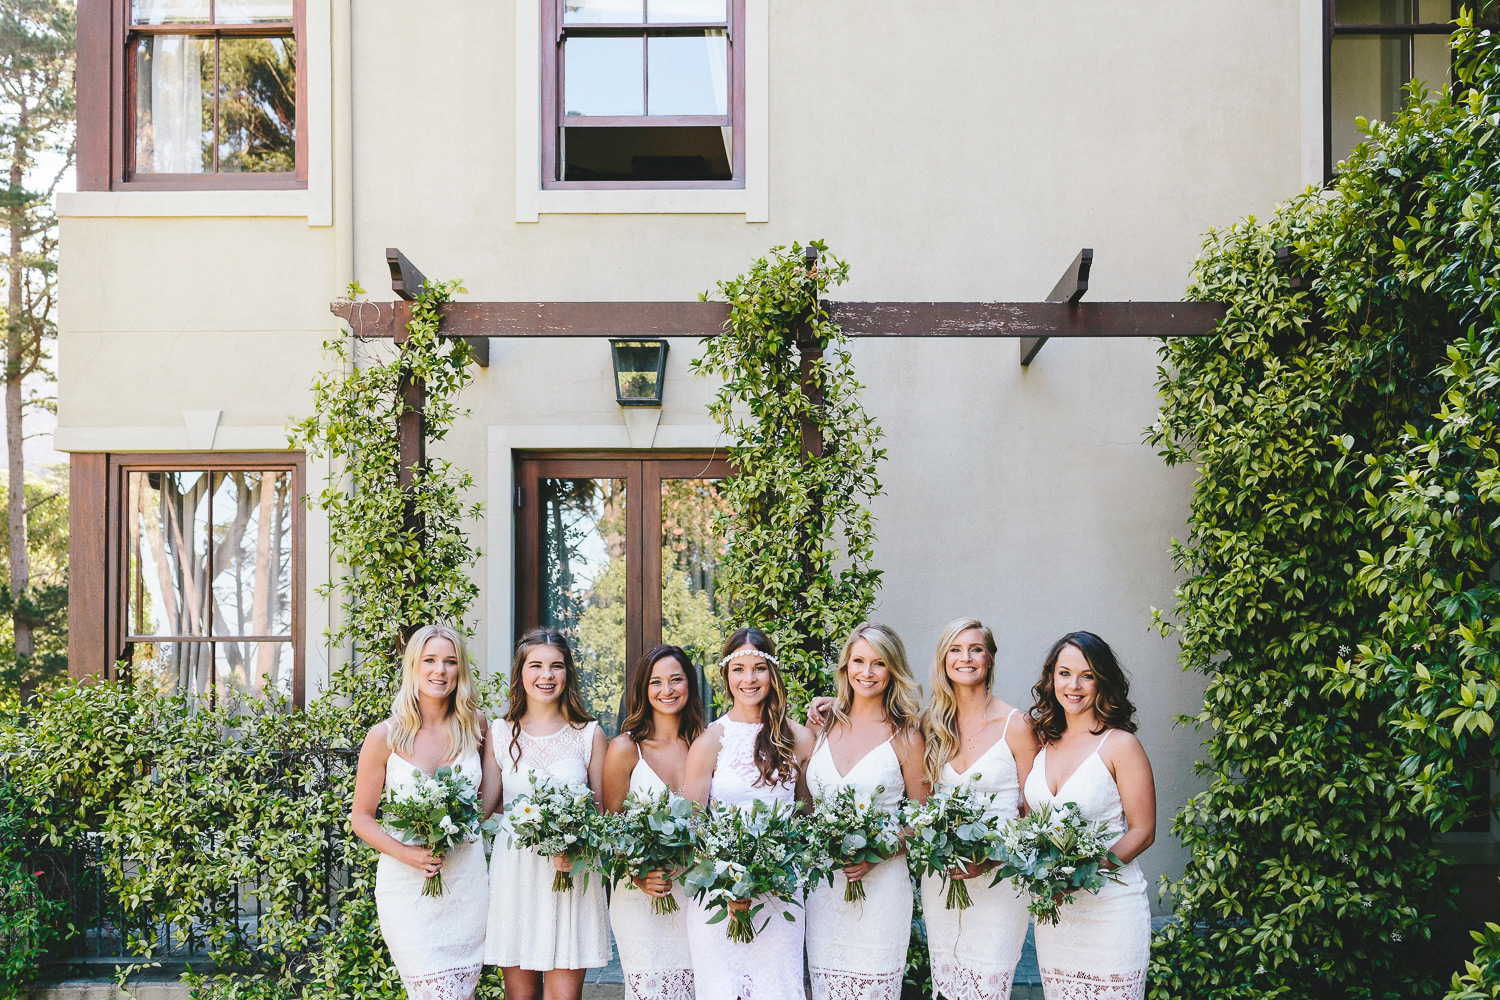 cape-town-wedding-photographer-western-cape-constansia-camilla-charlie-ray64.jpg